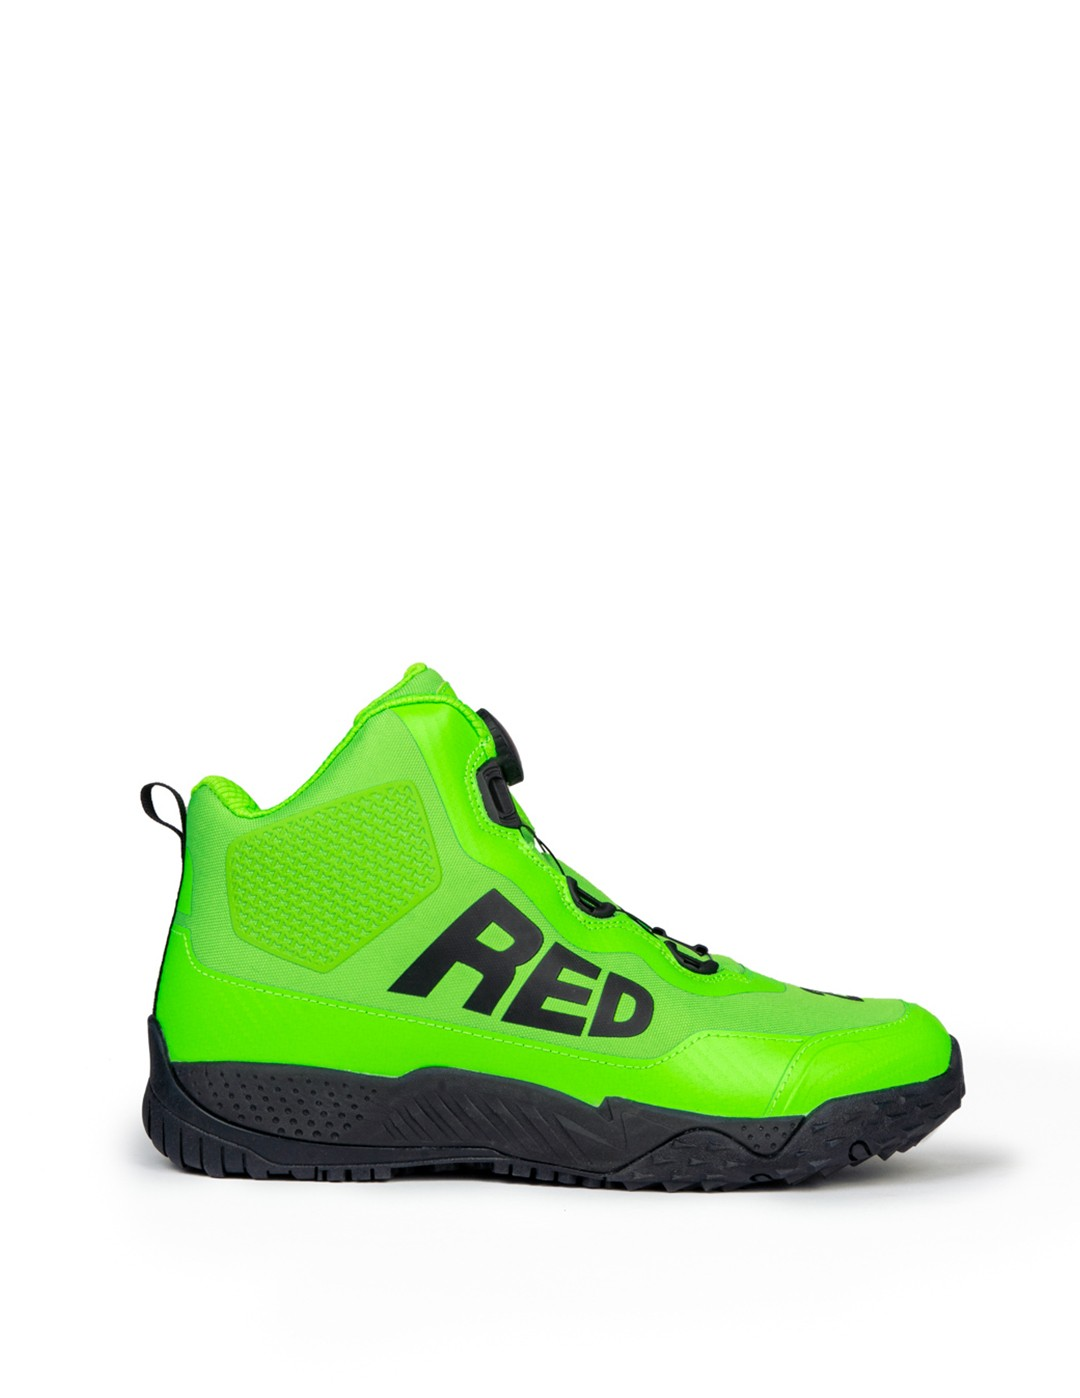 Boots WIRE™ Neon Streets Collection